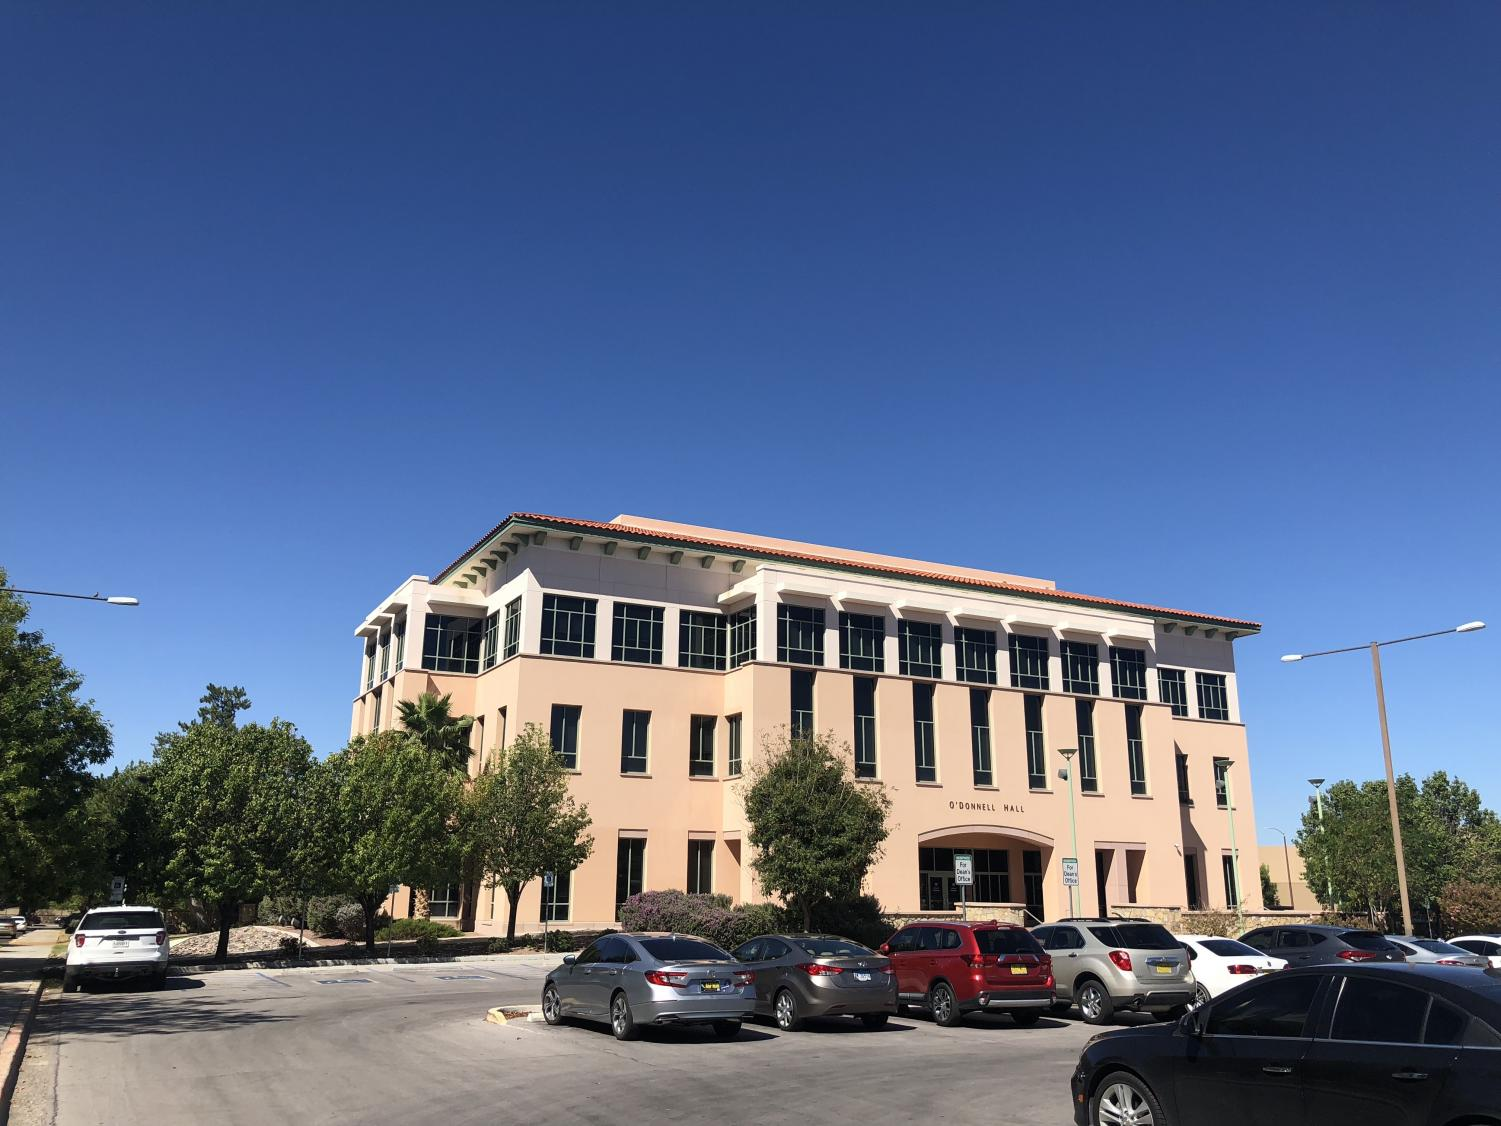 O'Donnell Hall is set to be home to the second Autism Diagnostic Center in New Mexico.